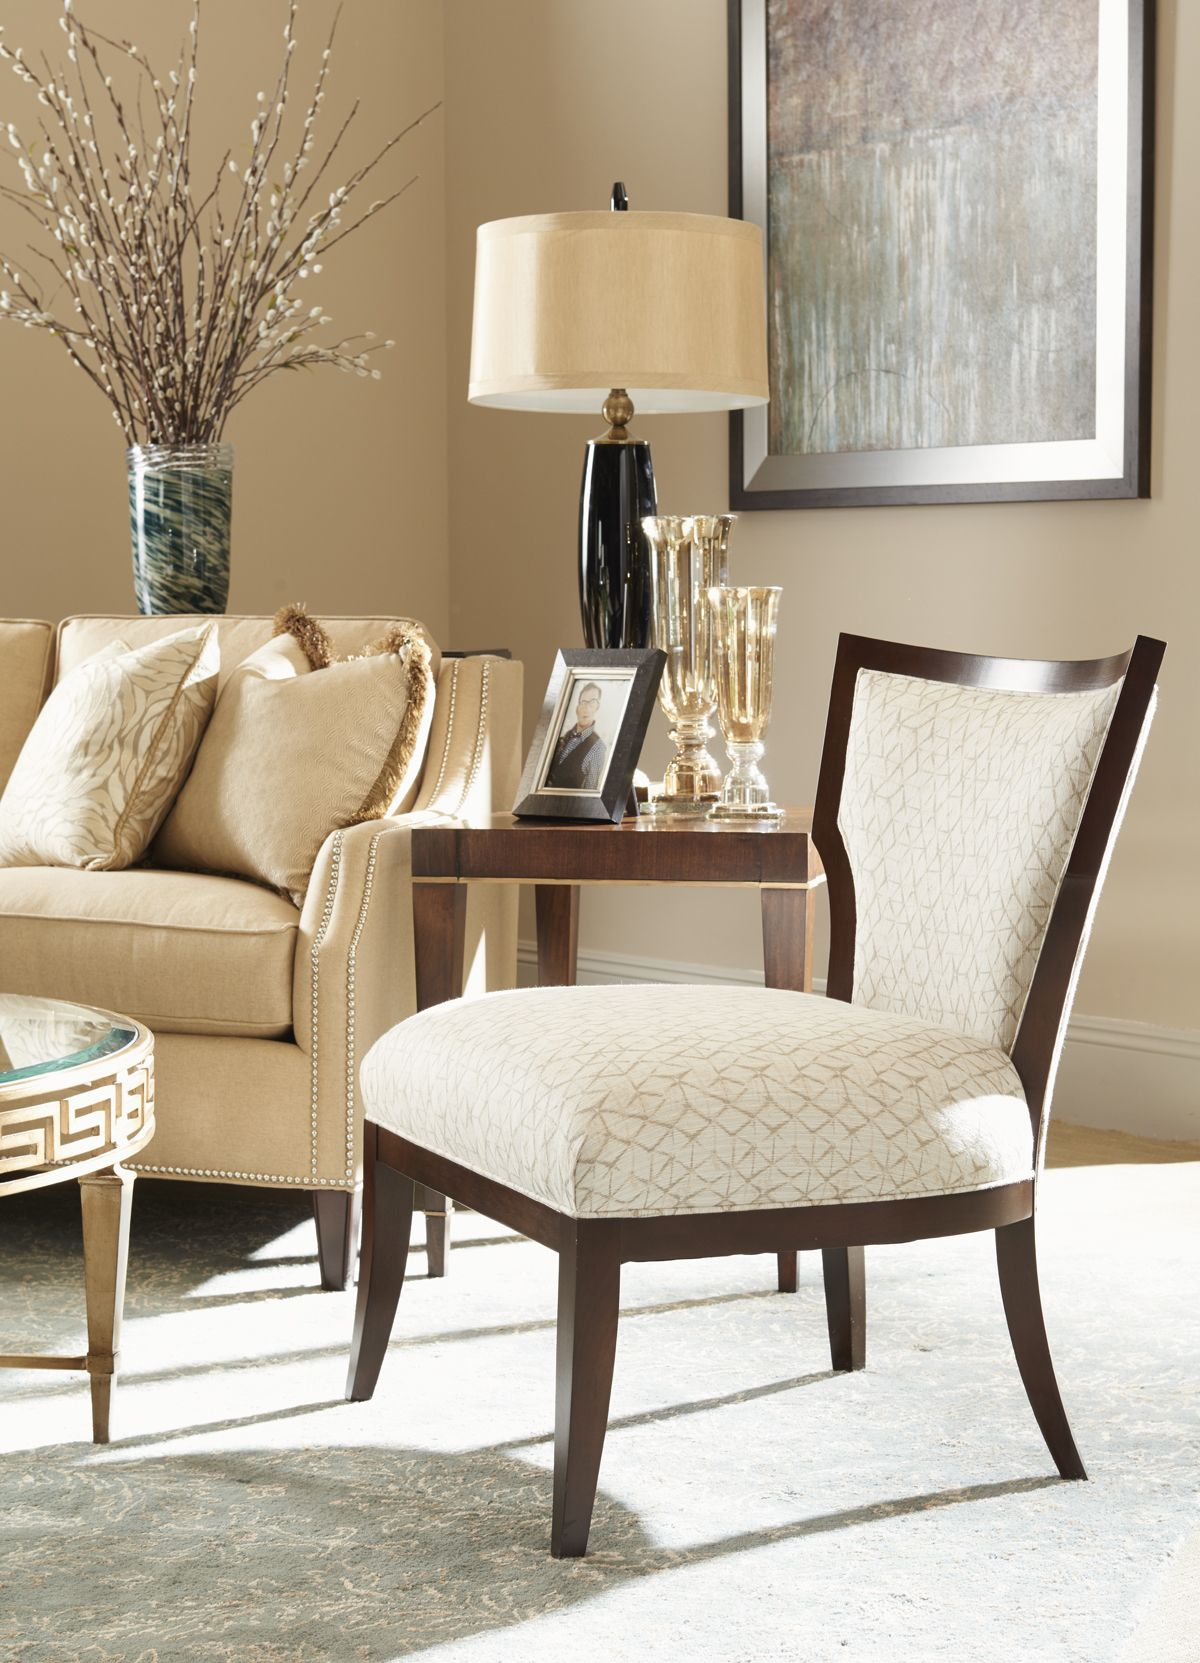 Mirage Gigi Chair Lexington Home Brands Furniture Chooseyourfabric Lhbdesign